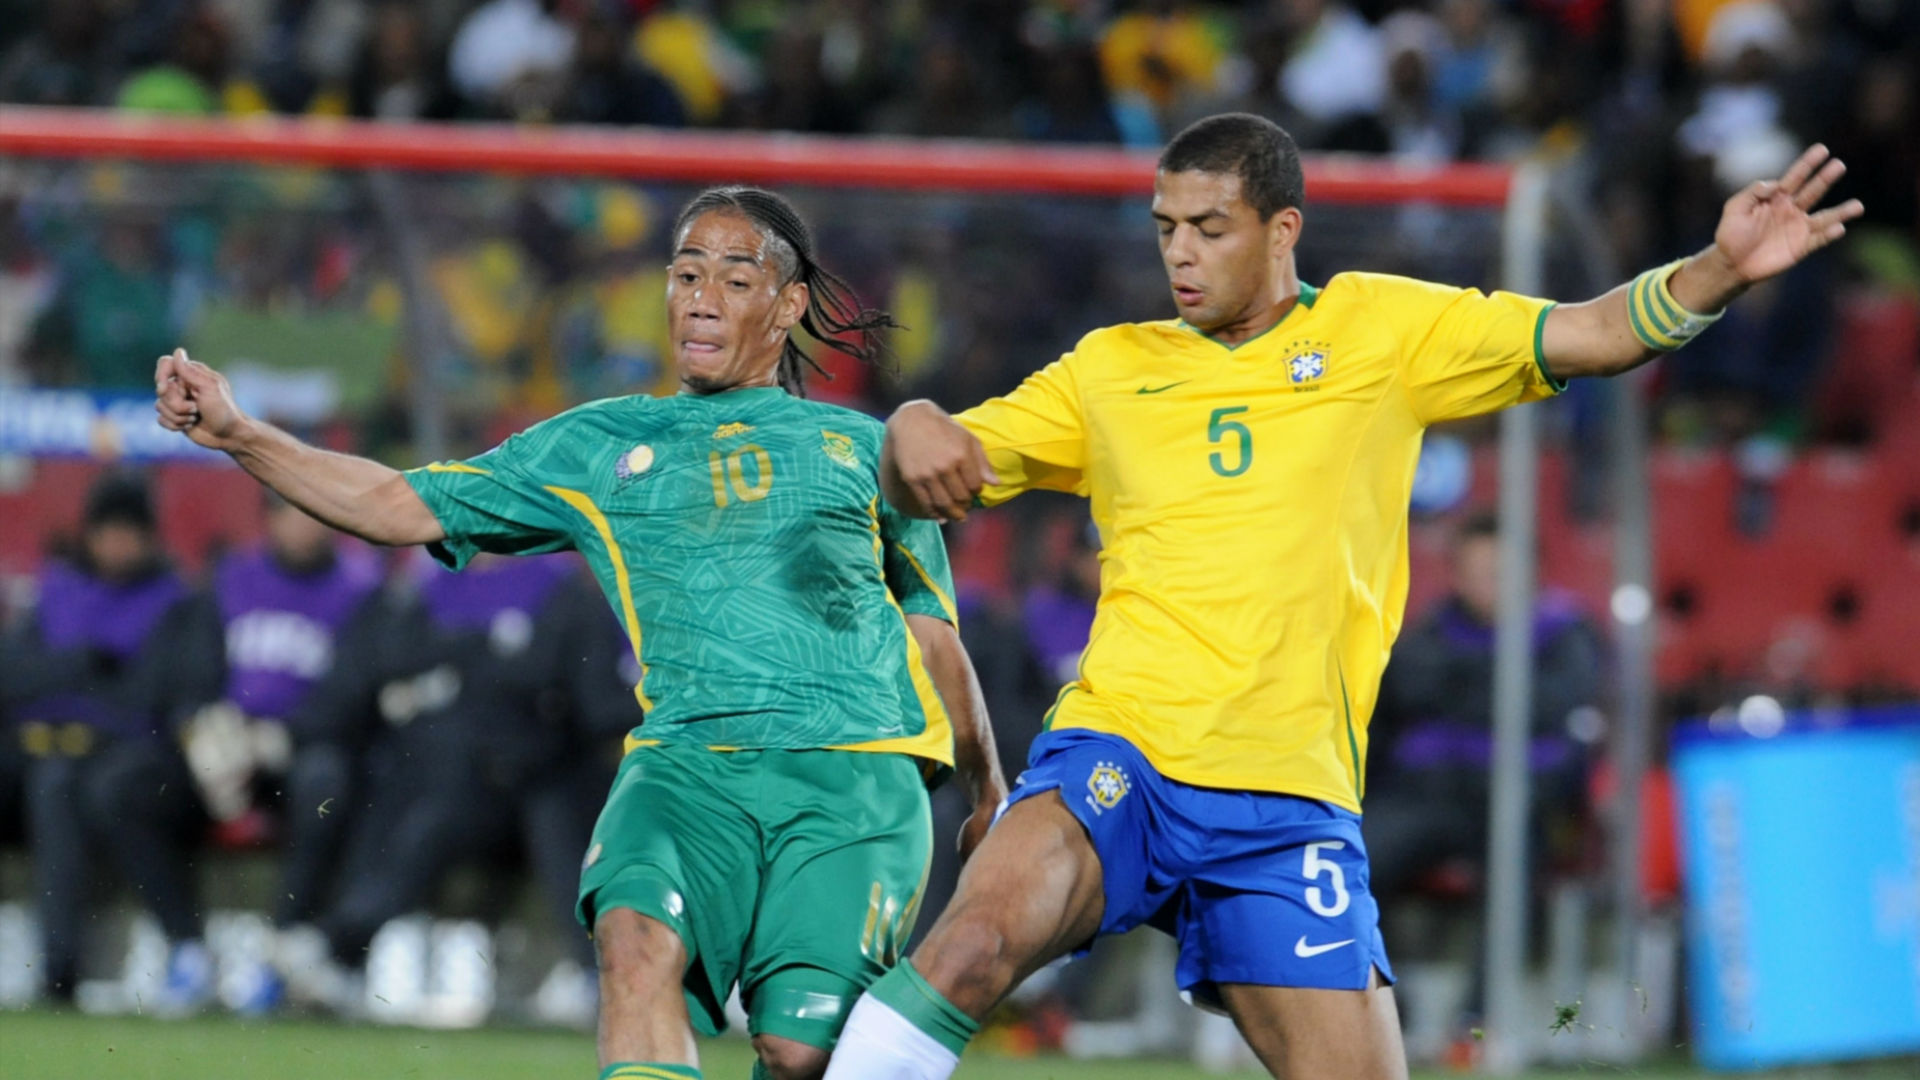 Steven Pienaar and Felipe Melo